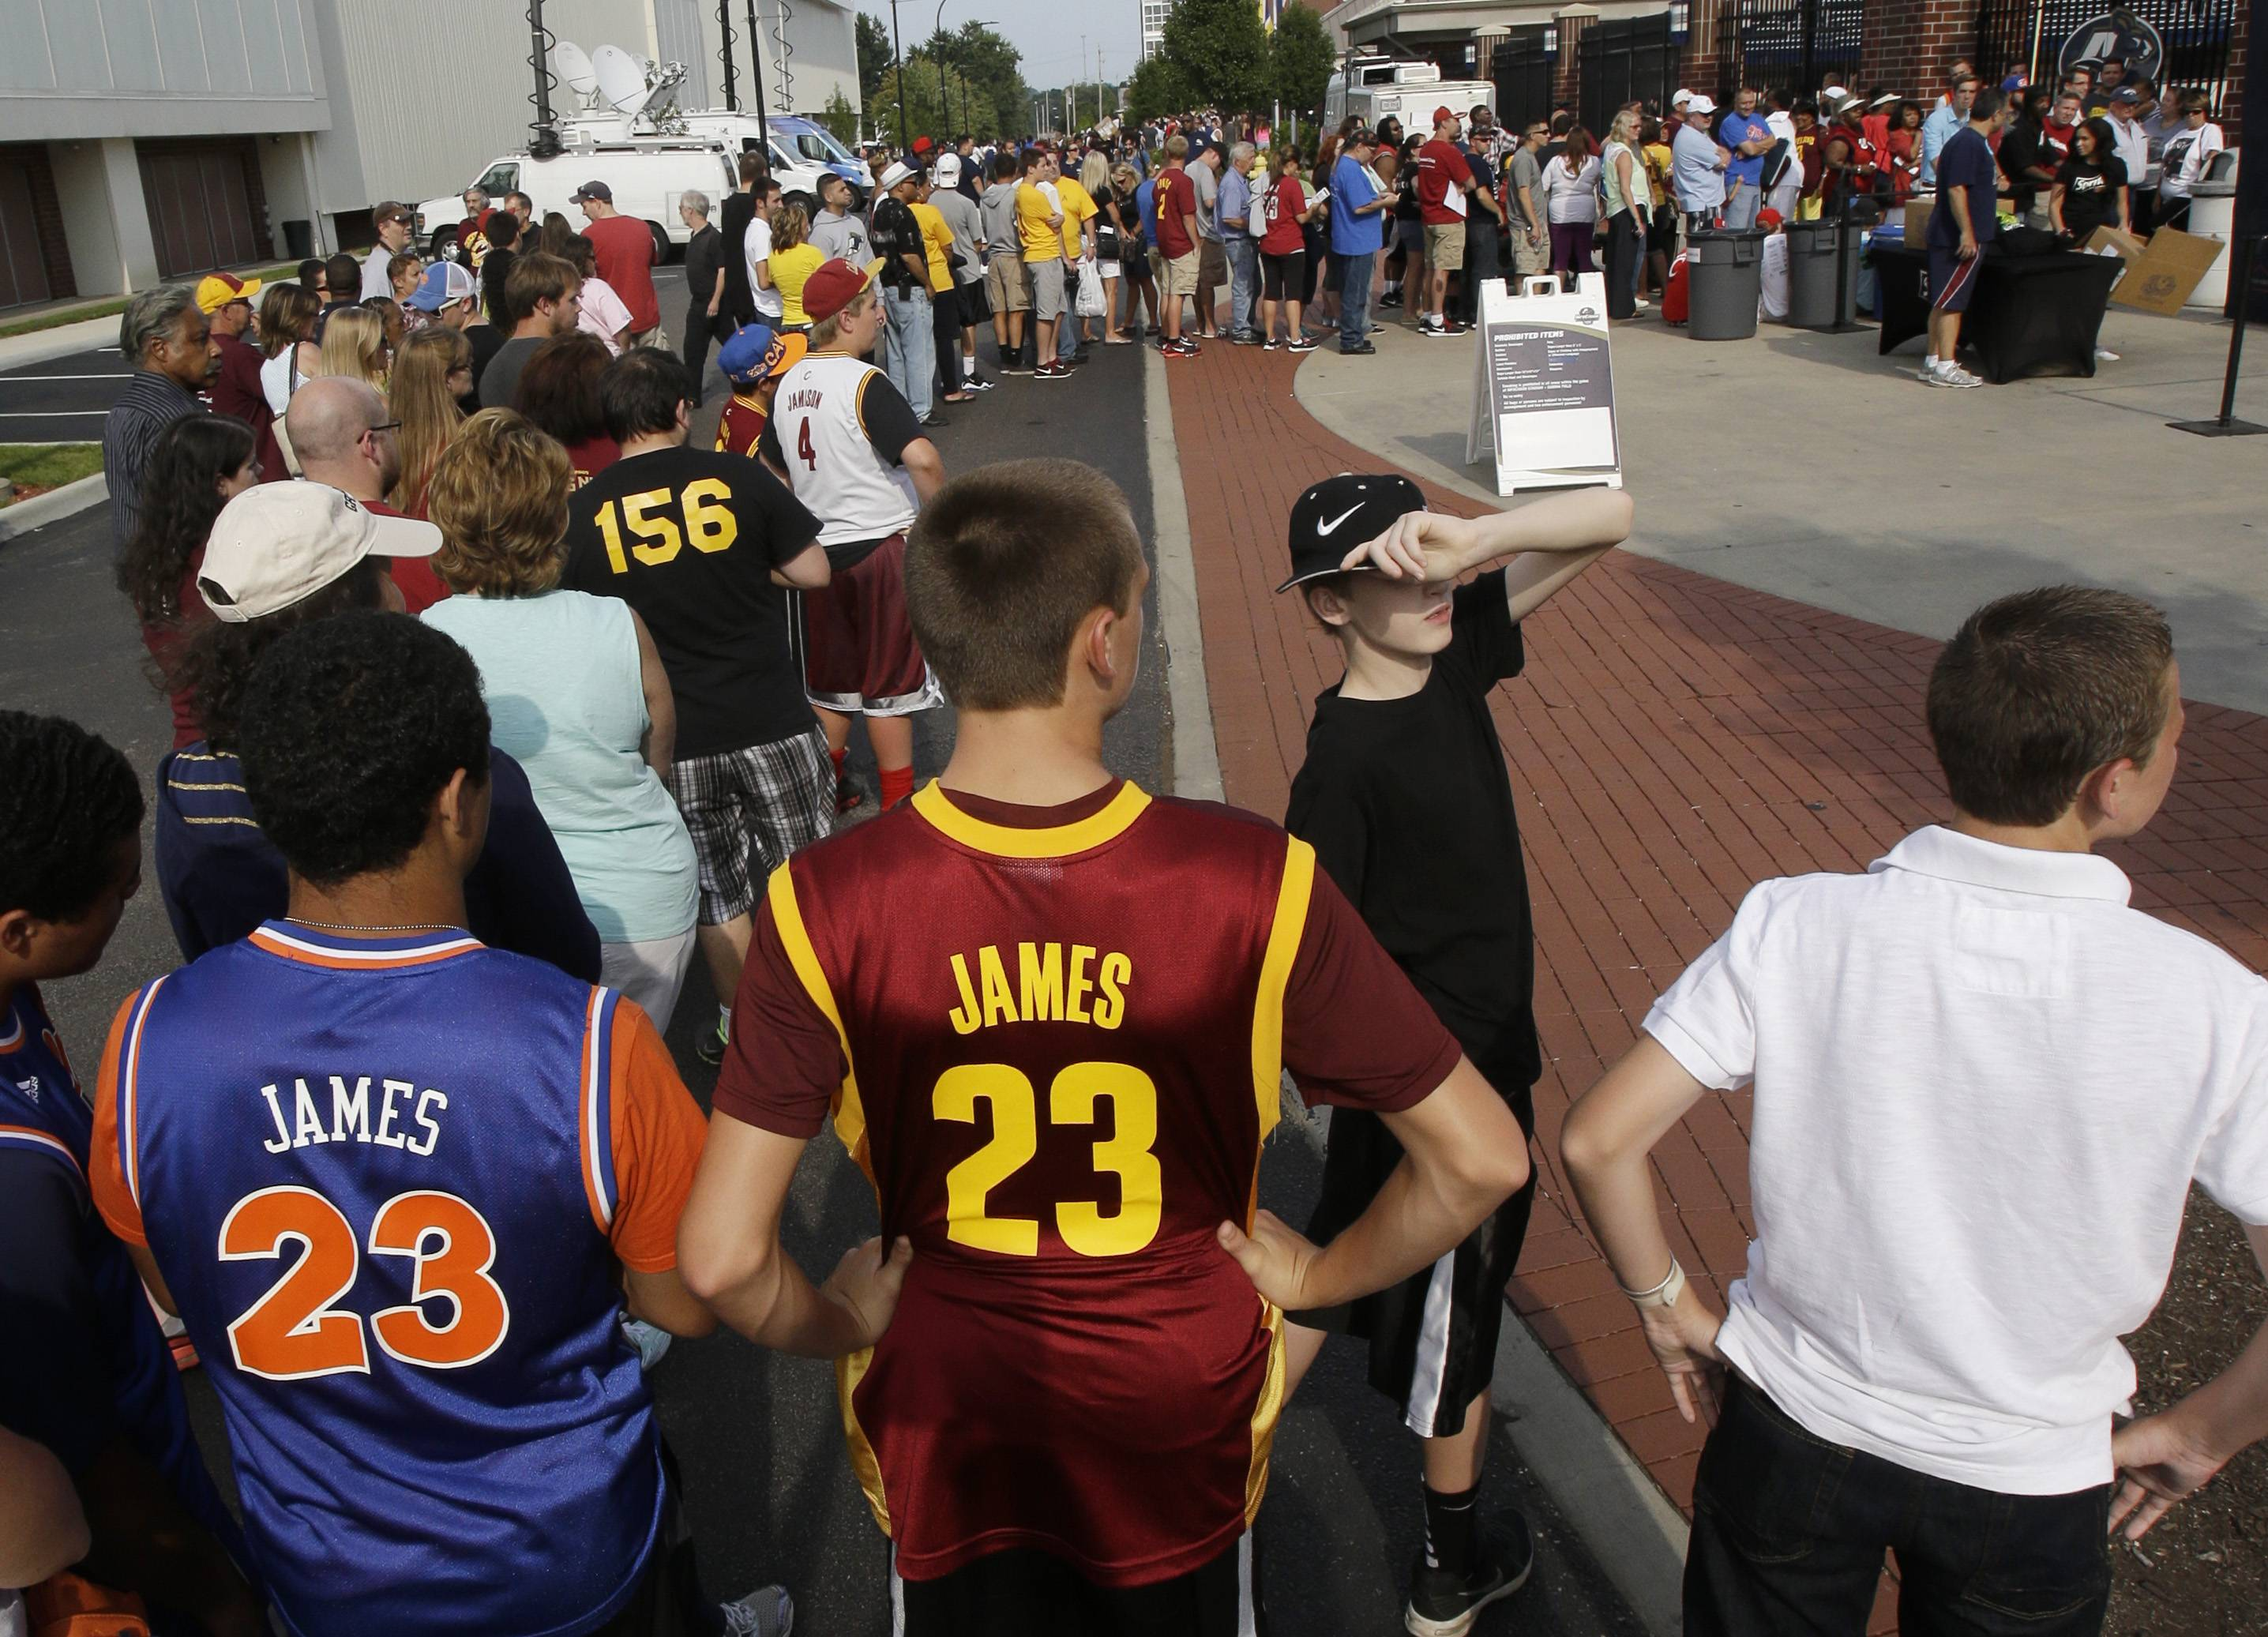 From left to right, Bryce Traylor and Corey Oswald, both 14, wait in line to enter InfoCision Stadium for the LeBron James homecoming Friday, Aug. 8, 2014, in Akron, Ohio. James is being welcomed back Friday night by the city where he first bounced a basketball. James grew up in Akron and has maintained a strong connection with his hometown.